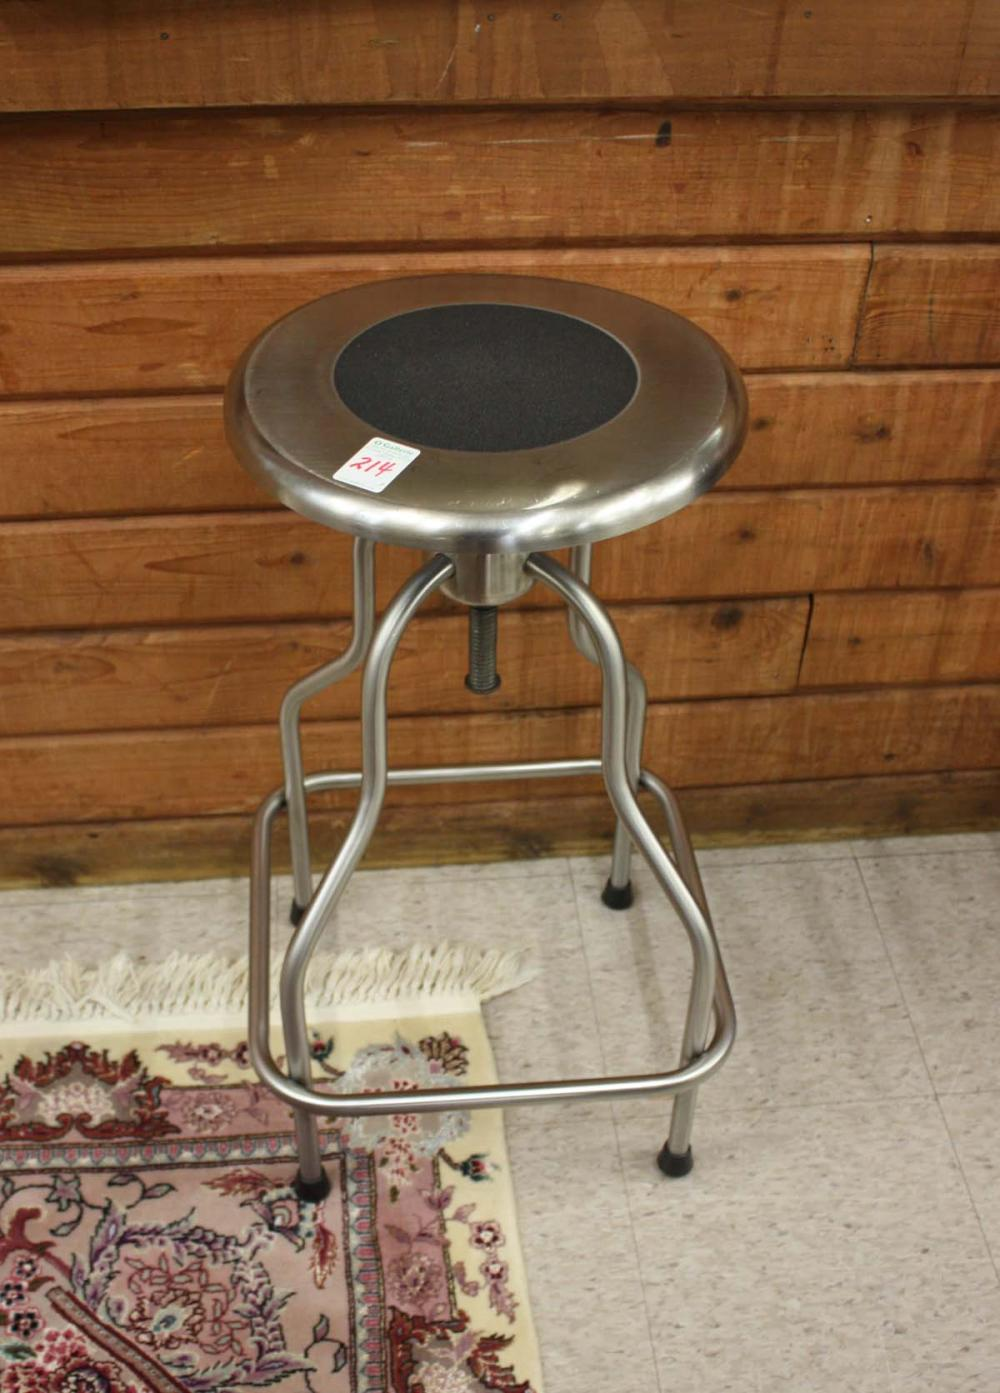 Lot 214: A SET OF THREE STAINLESS STEEL COUNTER STOOLS, UMF